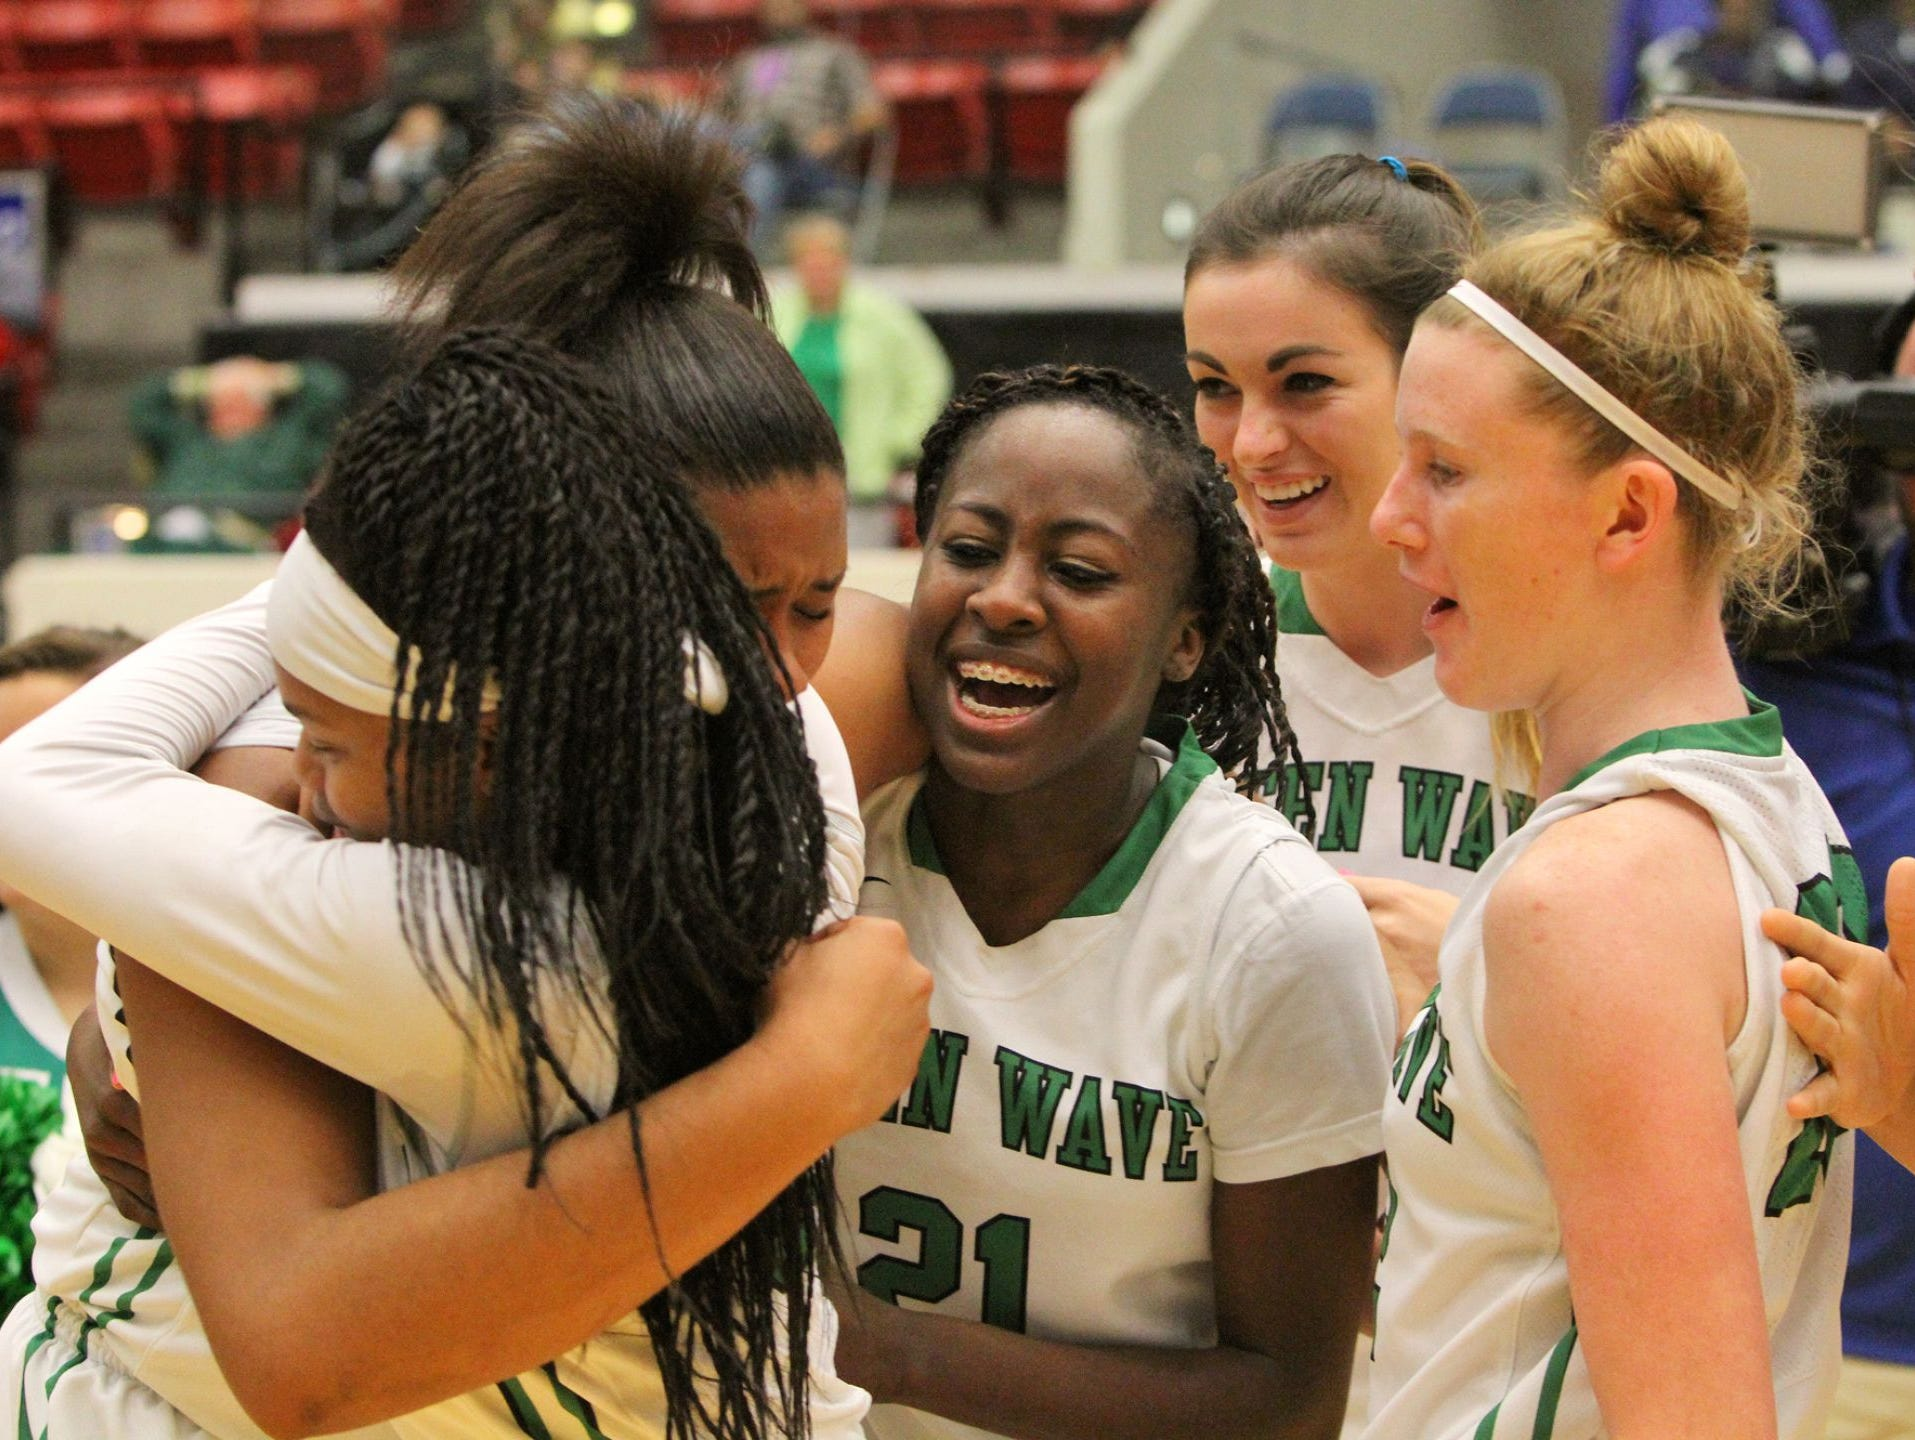 The Fort Myers girls basketball team celebrates following its 60-45 win over Oakland Park Northeast in the Class 6A finals on Saturday in Lakeland.